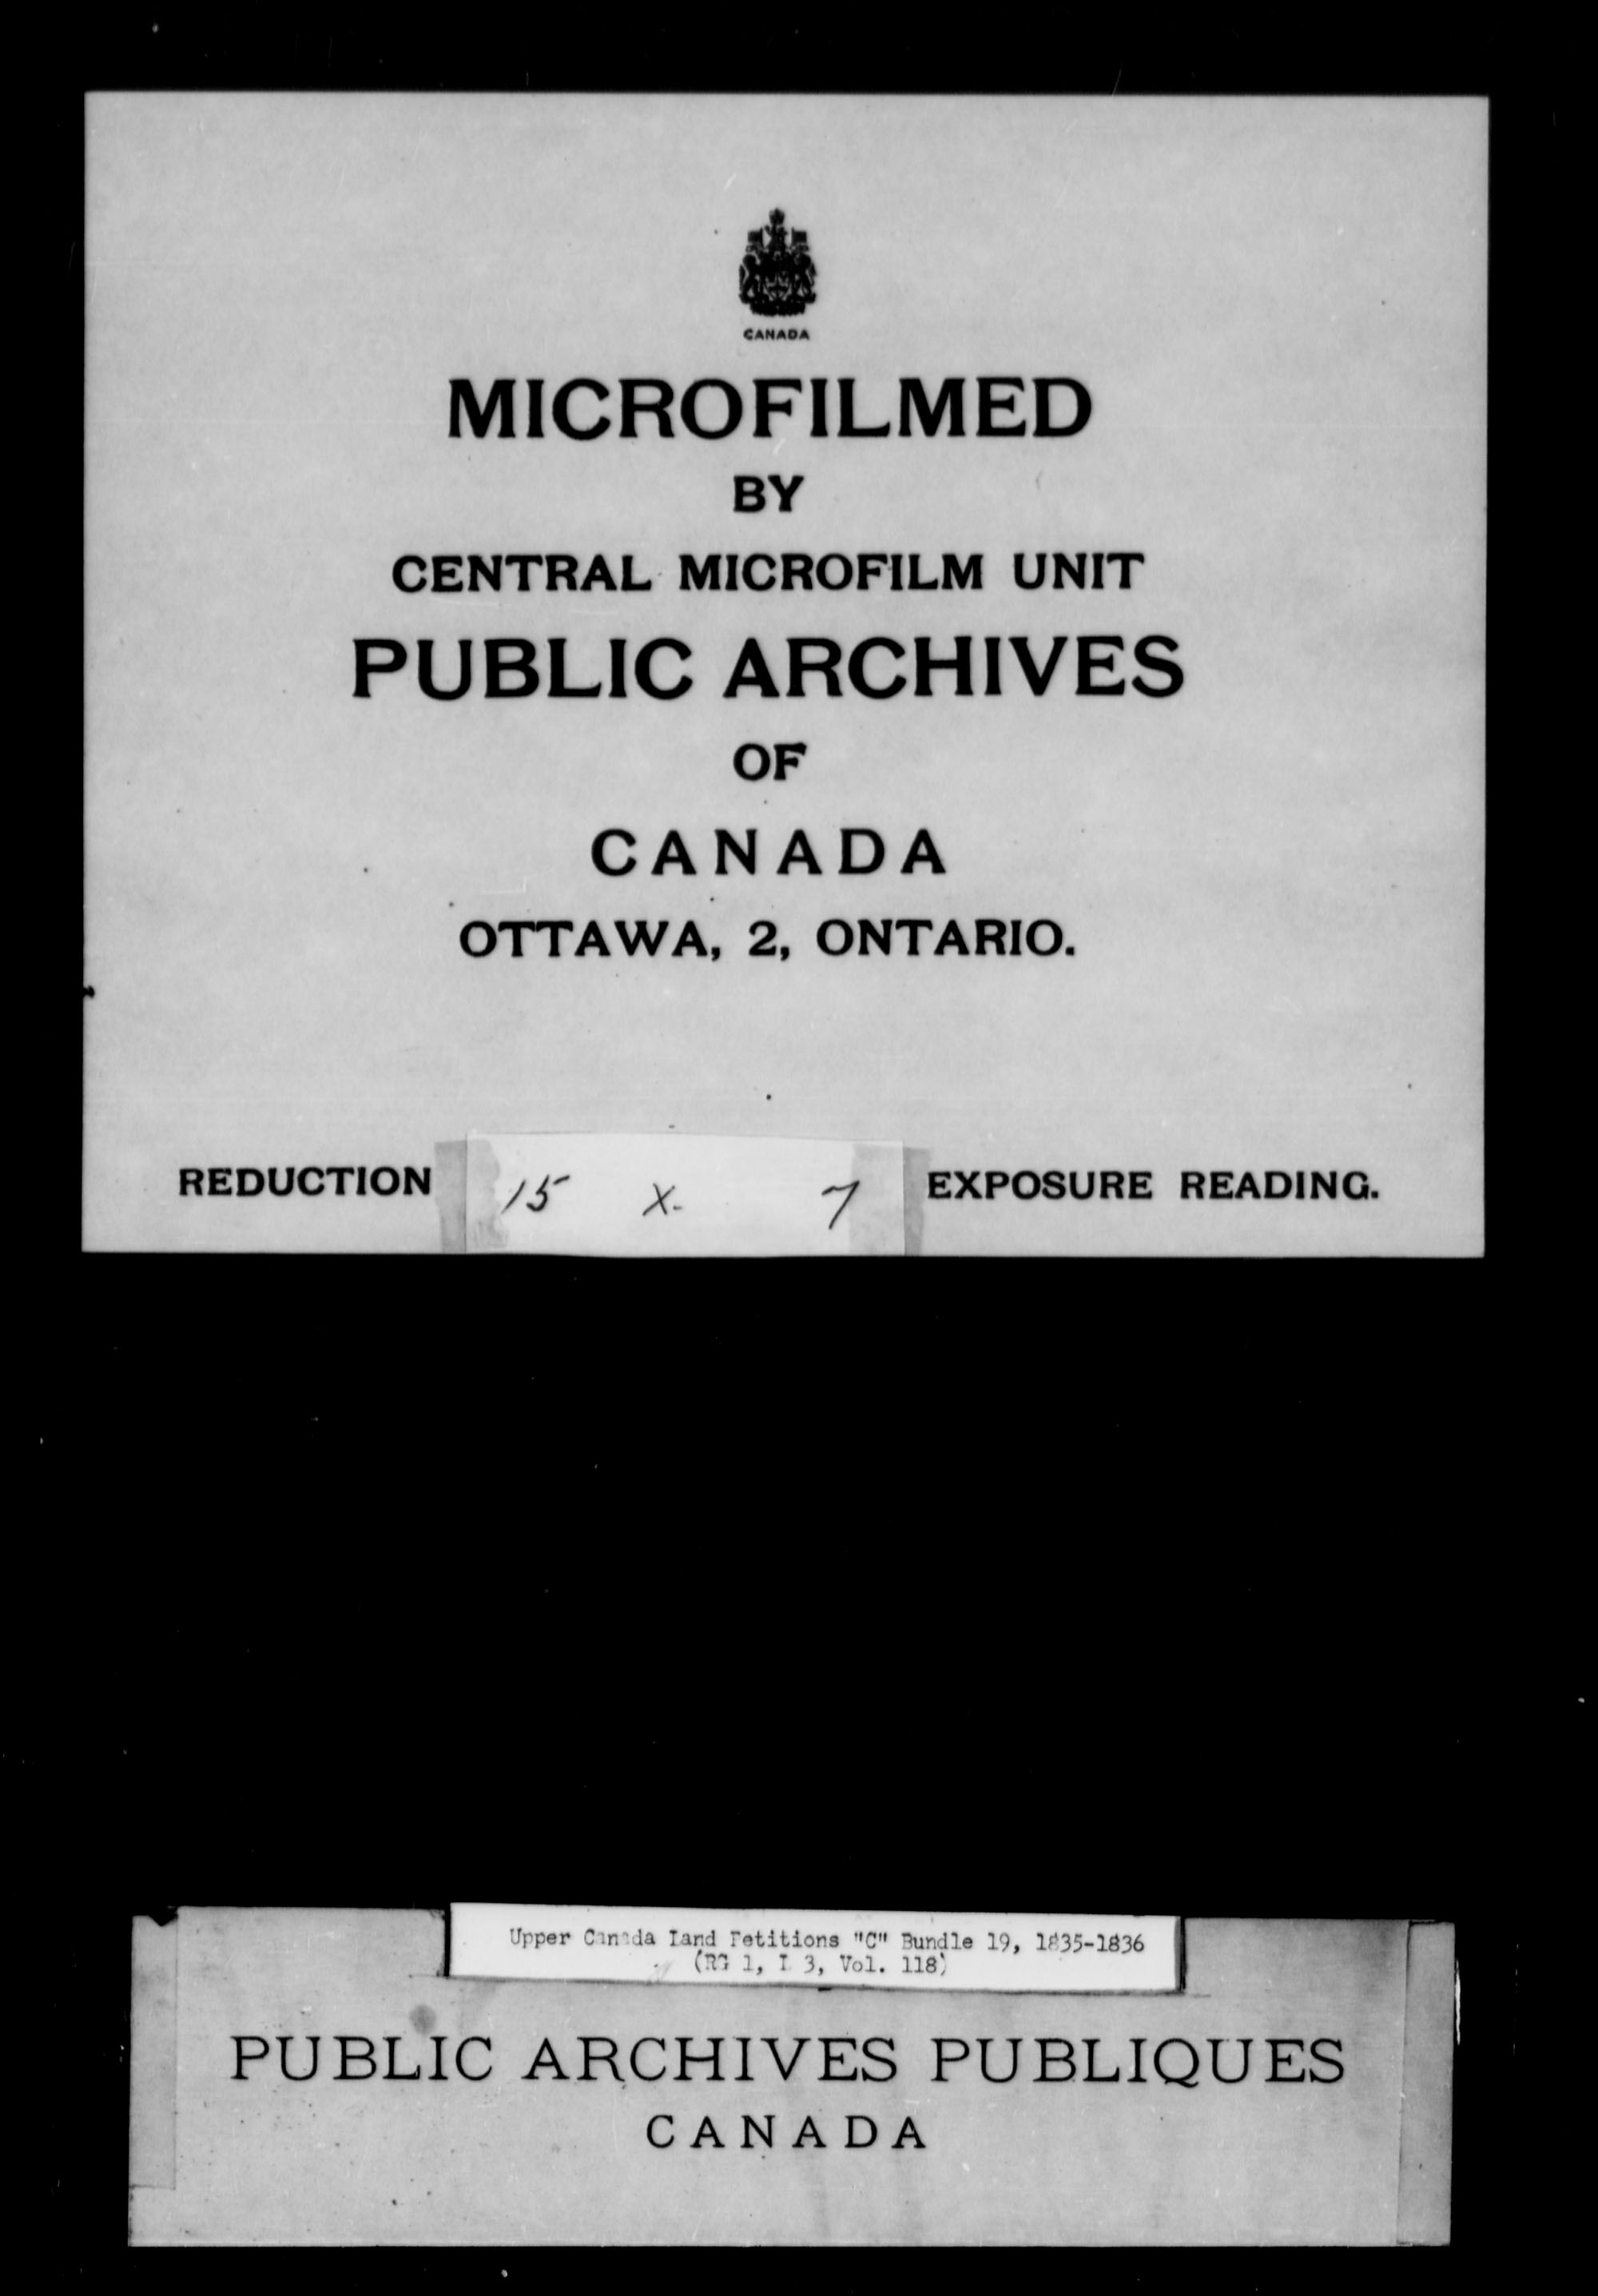 Title: Upper Canada Land Petitions (1763-1865) - Mikan Number: 205131 - Microform: c-1729